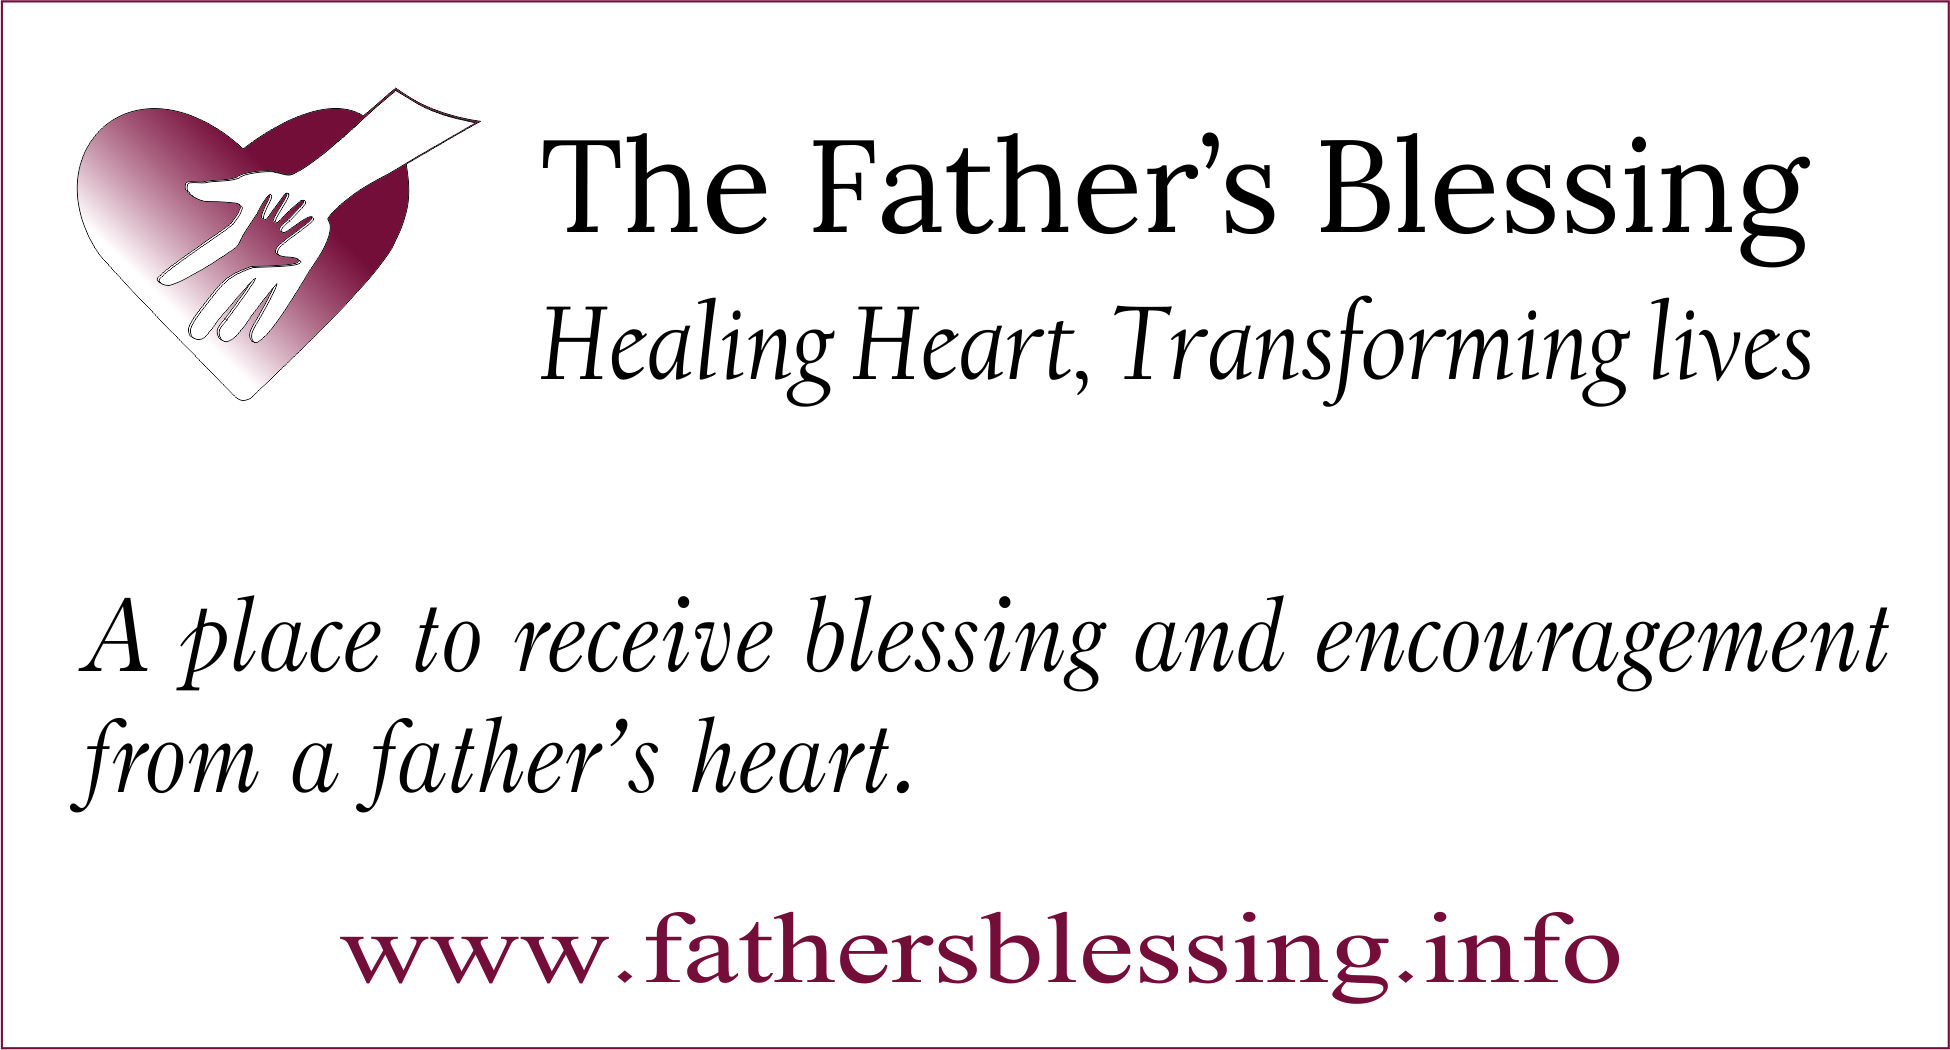 The Father's Blessing